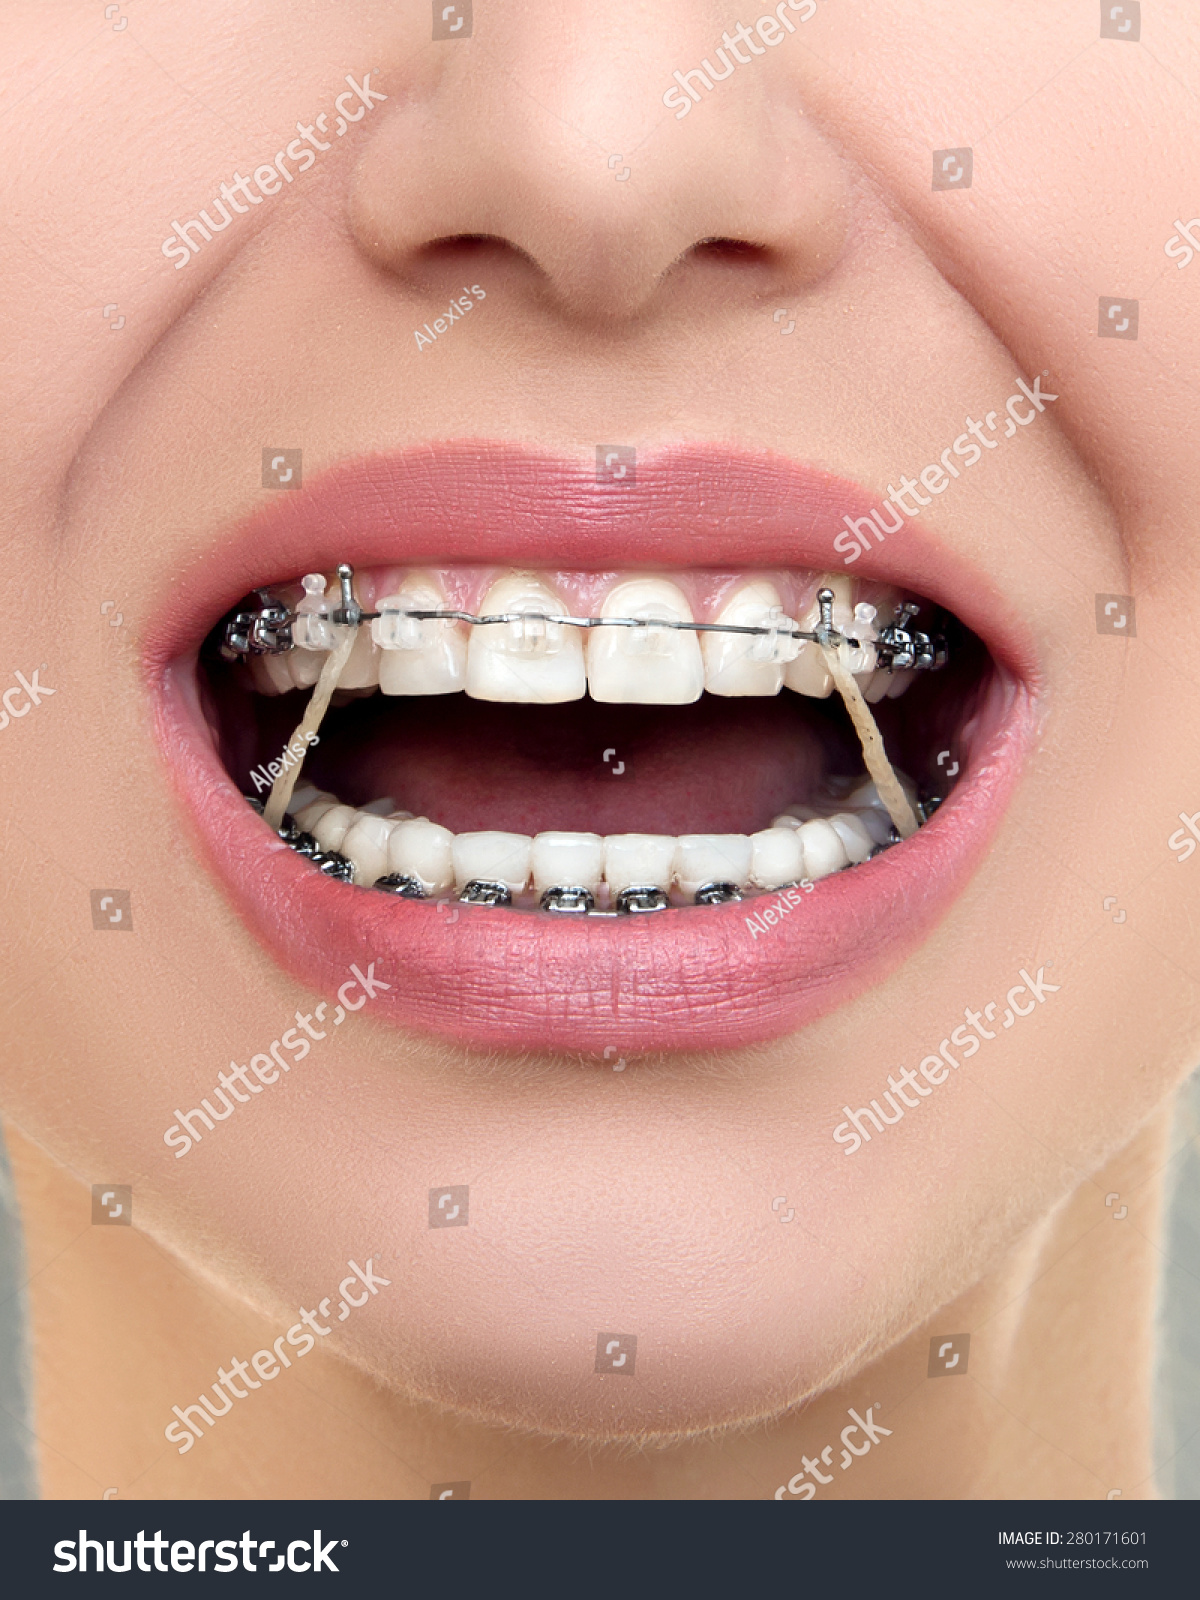 Closeup Ceramic And Metal Braces On Teeth With Elastic